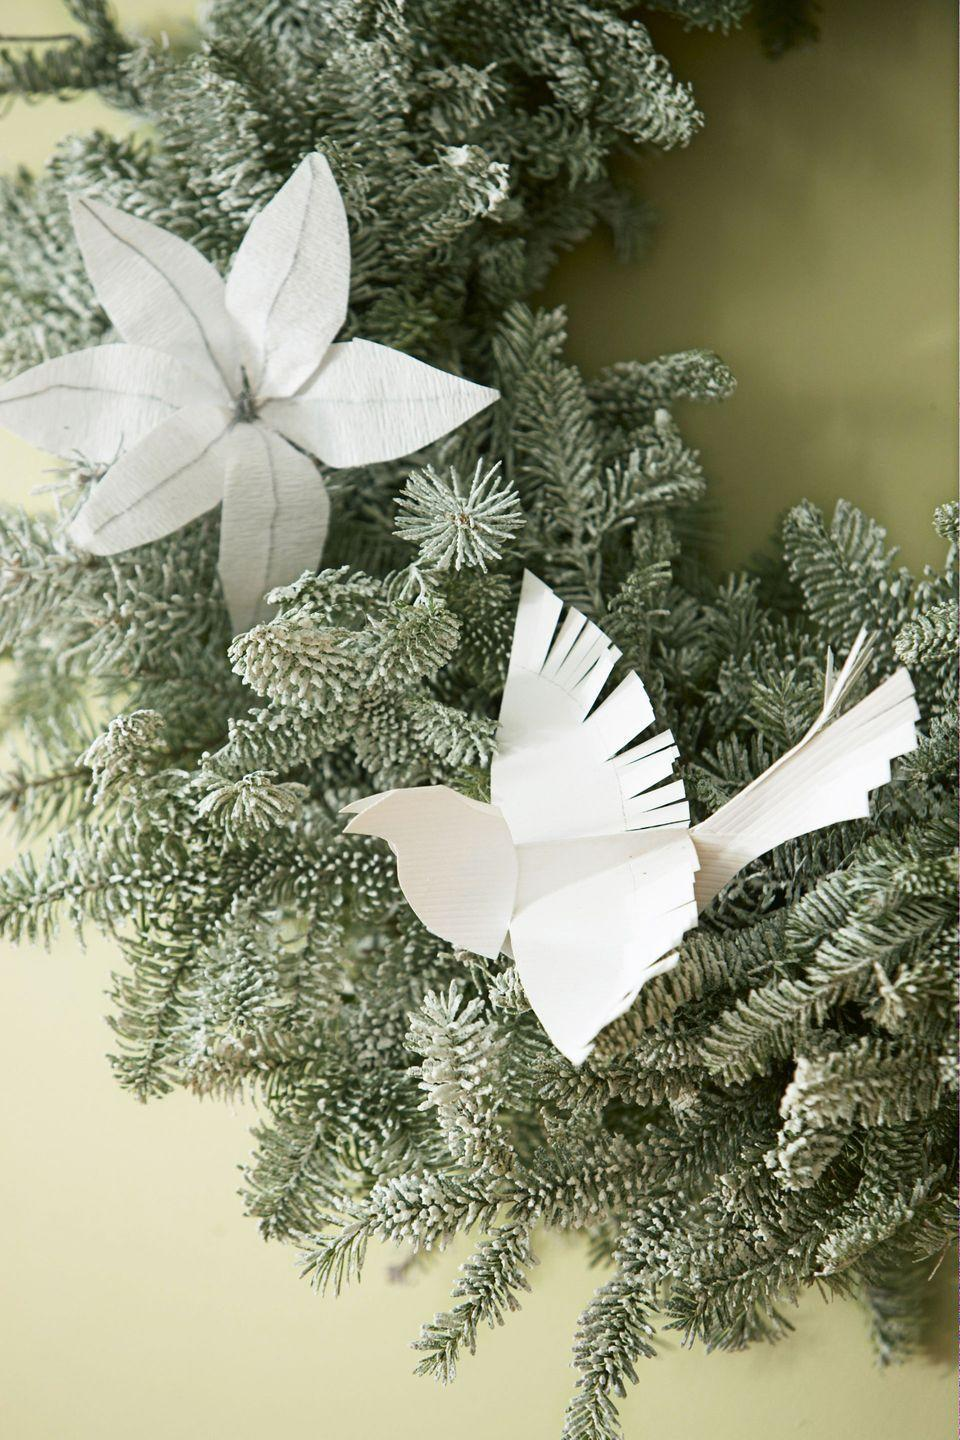 "<p>Evoke the peace and beauty of the season by whipping up some origami white doves. Tuck them in your tree or wreath, or hang above the holiday table.</p><p><em><a href=""https://www.goodhousekeeping.com/holidays/christmas-ideas/g393/homemade-christmas-ornaments/"" rel=""nofollow noopener"" target=""_blank"" data-ylk=""slk:See the idea »"" class=""link rapid-noclick-resp"">See the idea »</a></em><br></p>"